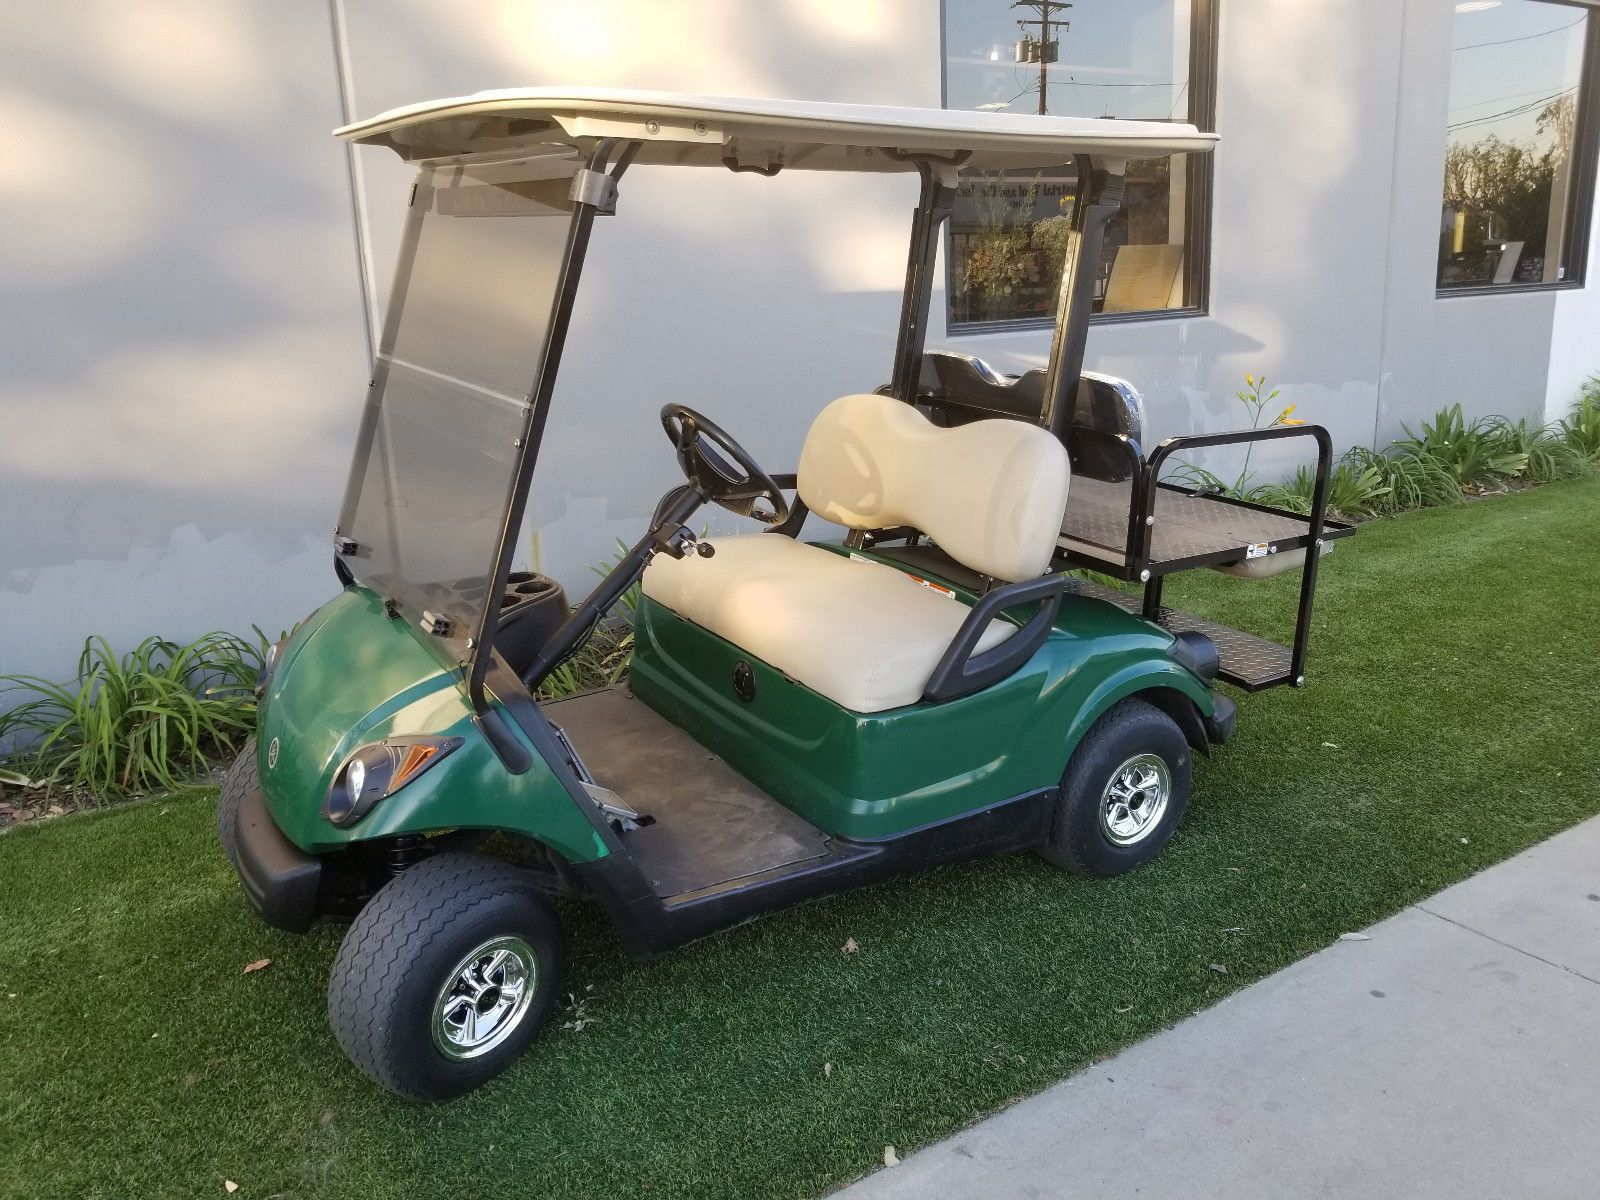 Yamaha G2 Golf Cart Bodies - Year of Clean Water